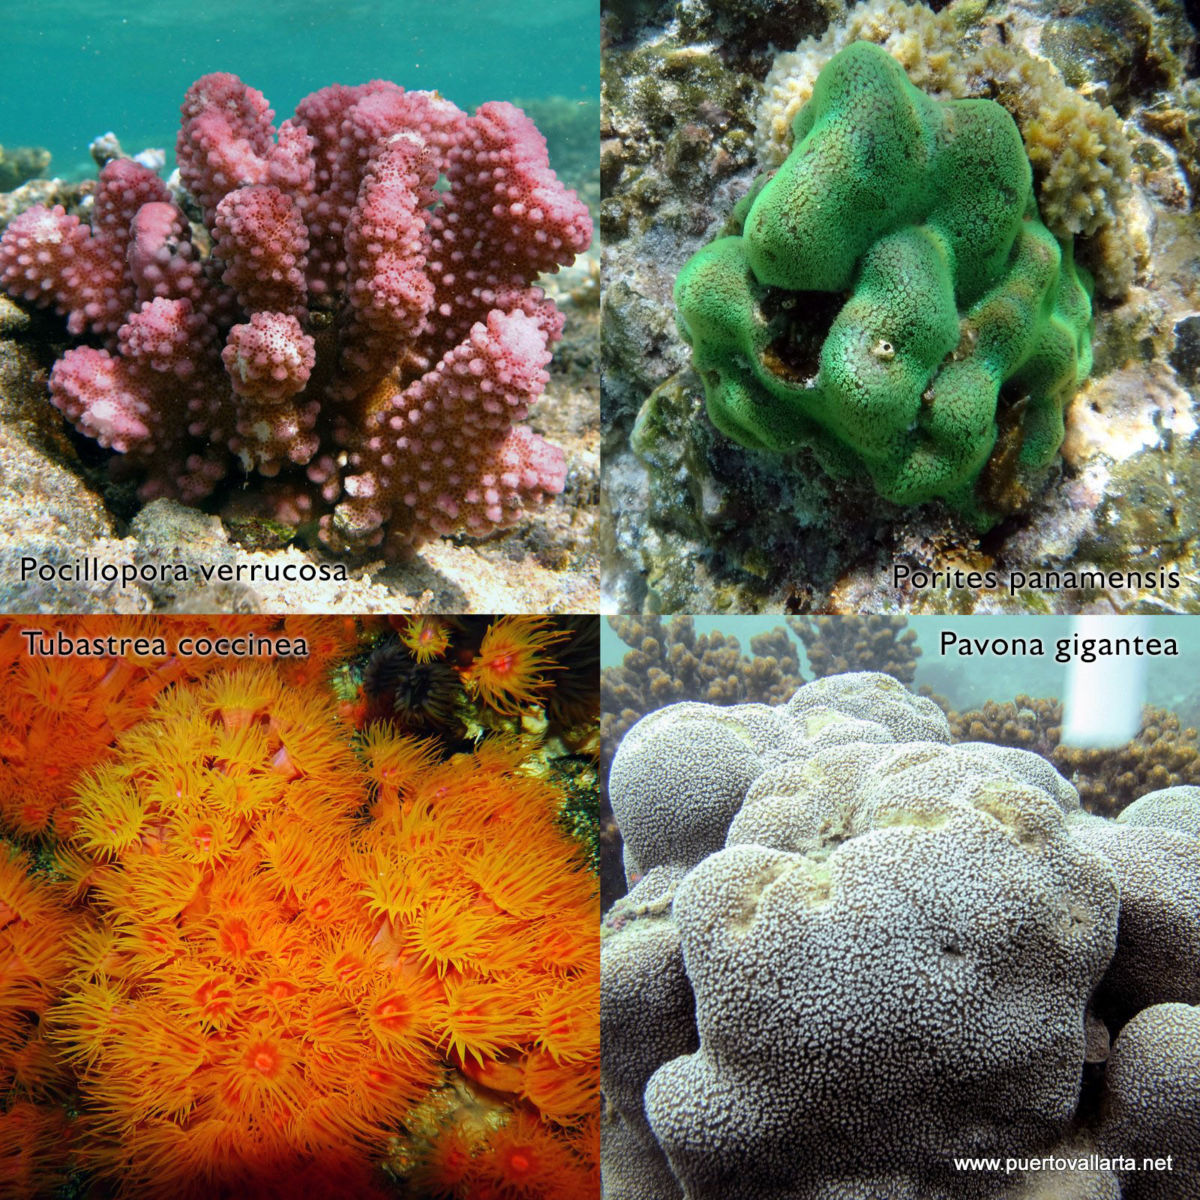 Coral species that form reefs at the Marietas Islands